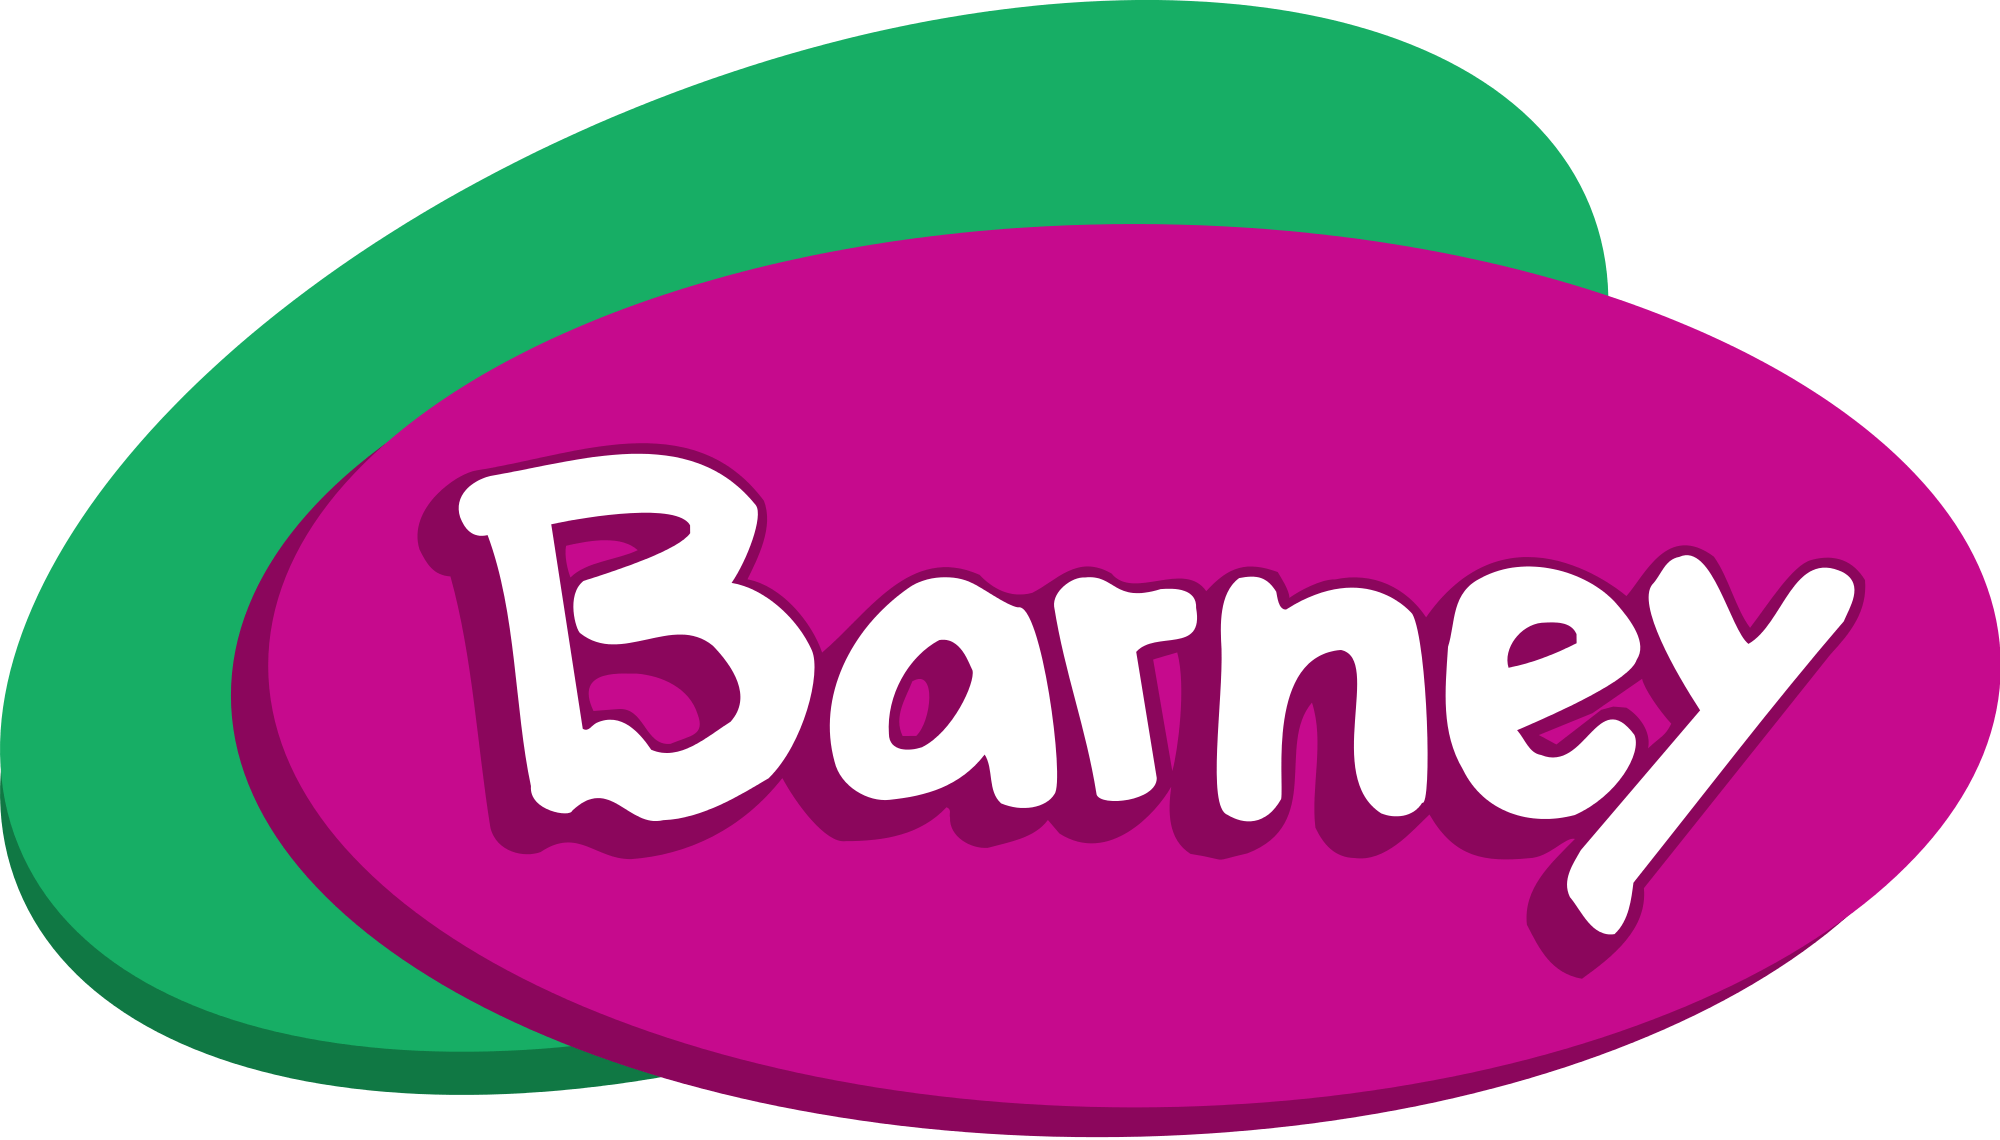 Barney transparent jpeg. Clipart at getdrawings com